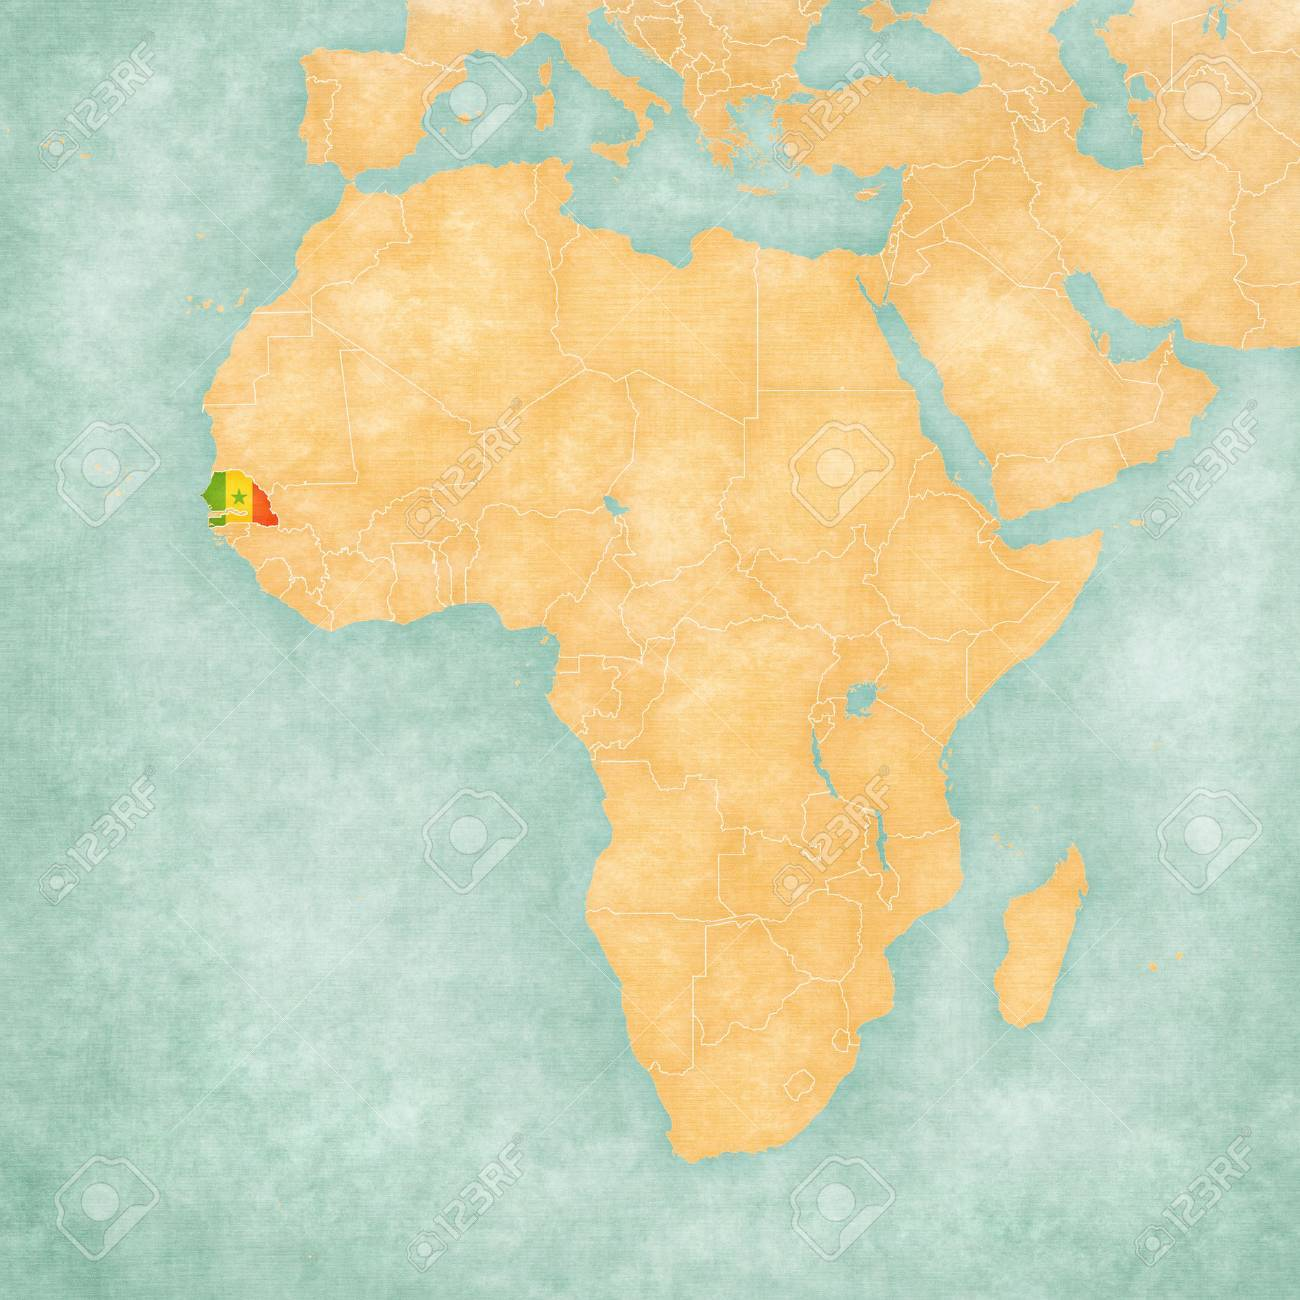 Map Of Africa Senegal.Senegal Senegalese Flag On The Map Of Africa The Map Is In